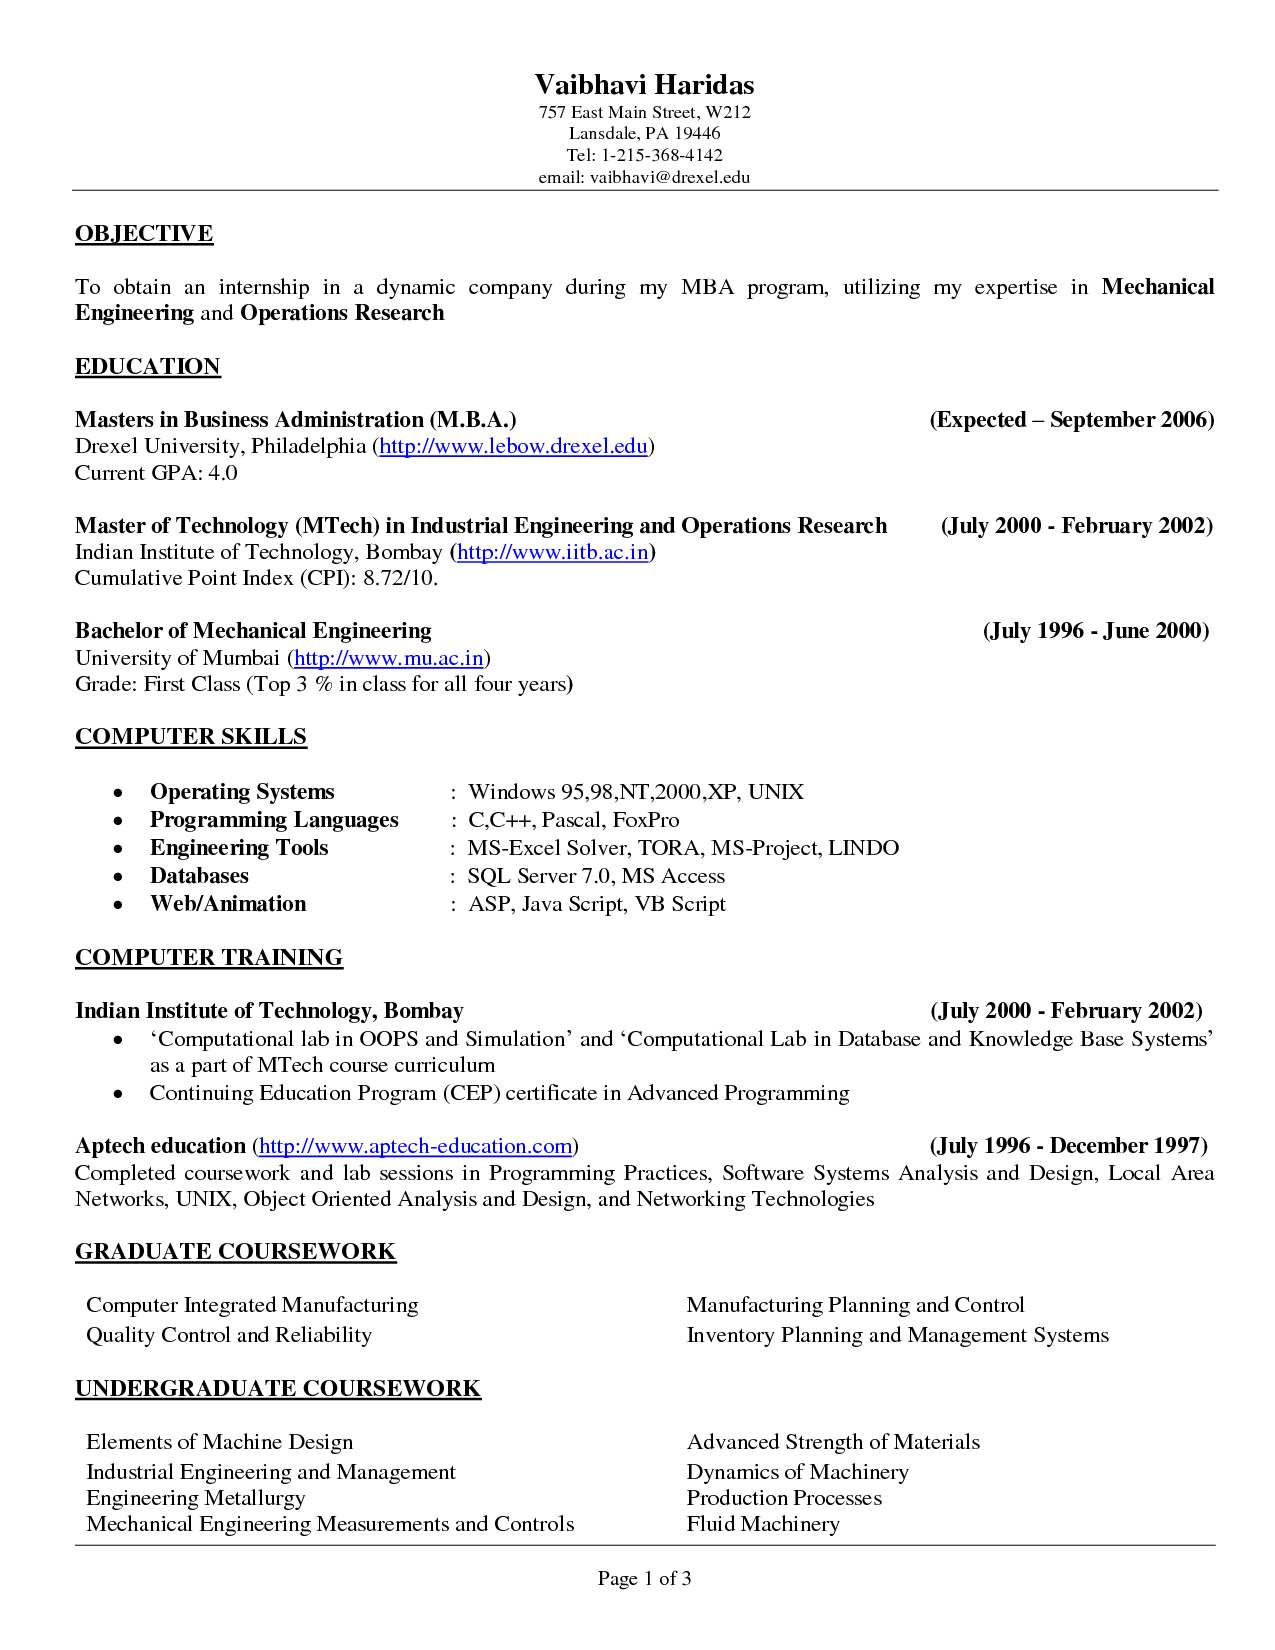 Best Resume Objectives Brilliant Resume Objective Example Best Templateresume Objective Examples Design Ideas